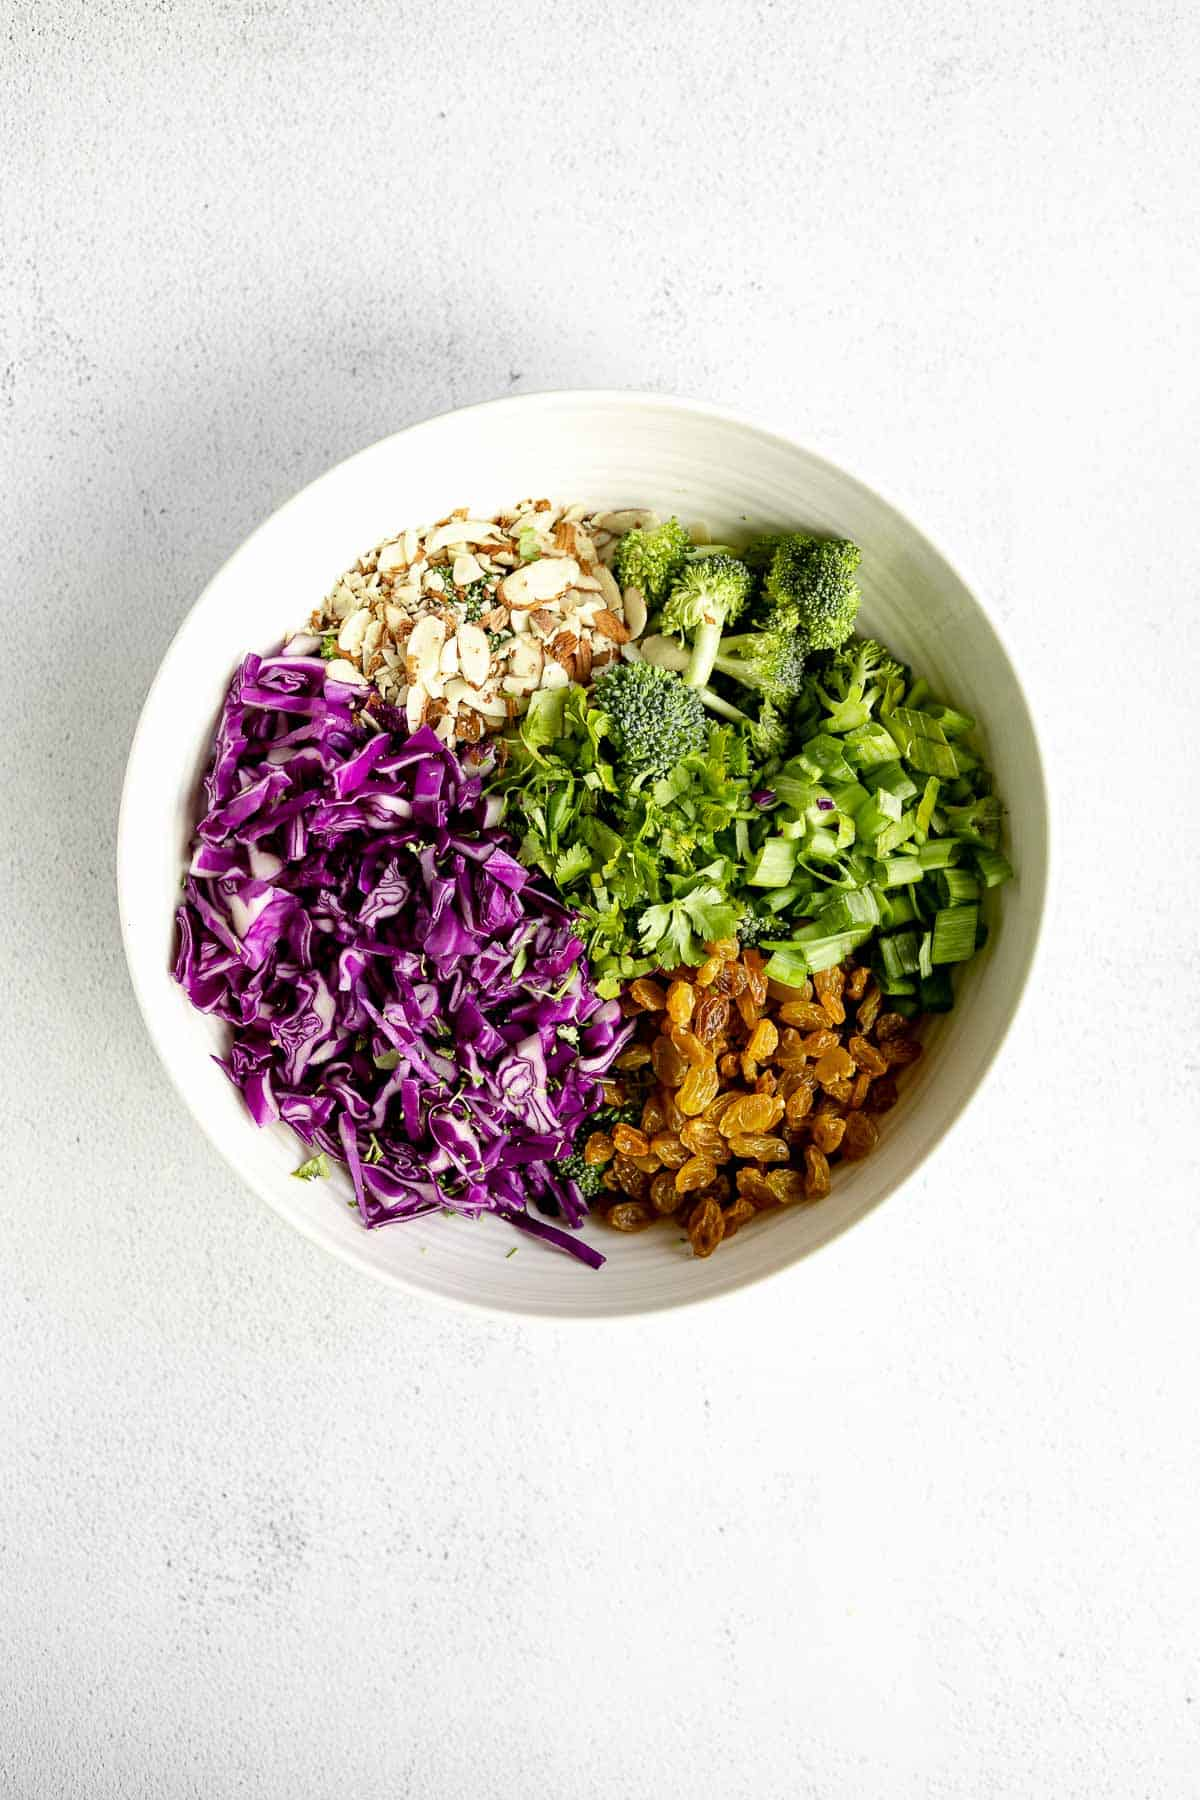 ingredients for the salad in a bowl